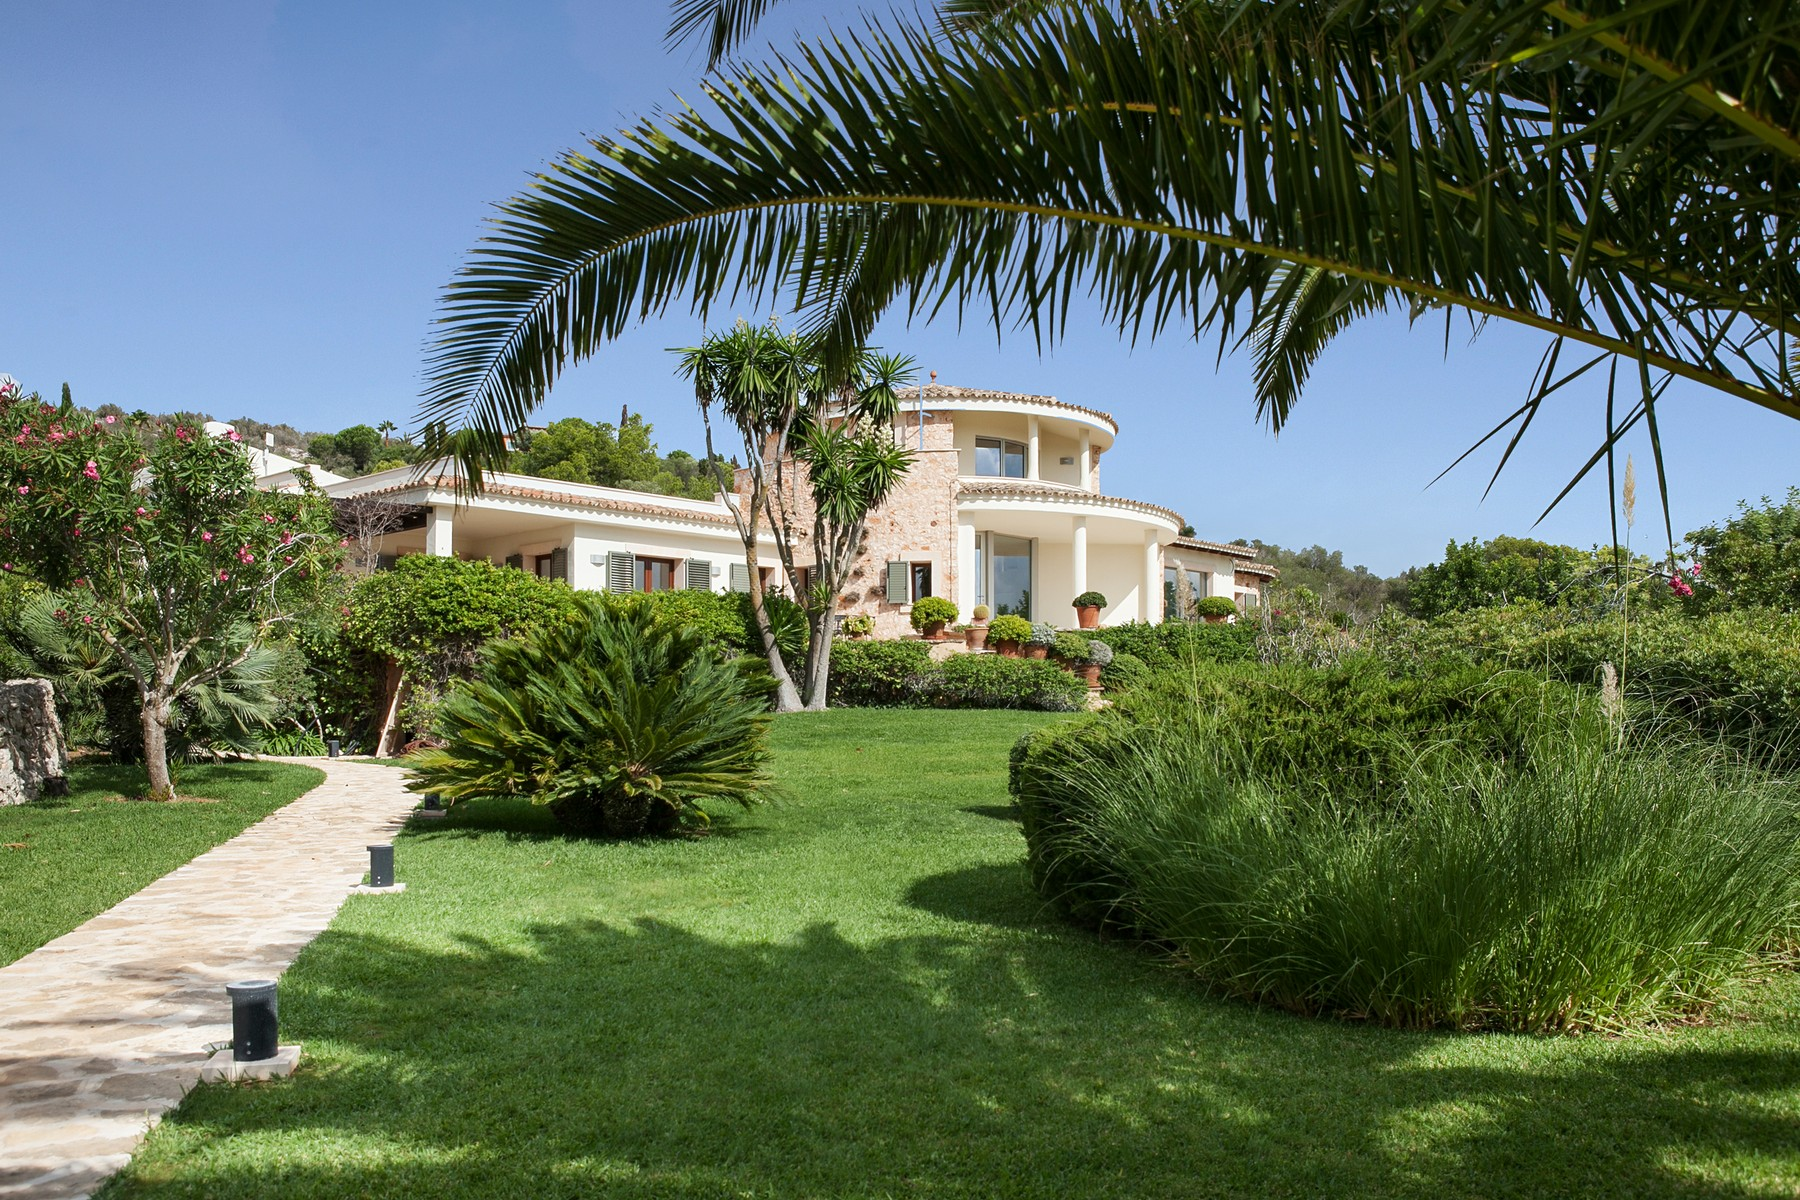 단독 가정 주택 용 매매 에 Country Estate with sea views near Porto Colom es caritxo Porto Colom, 말로카, 07669 스페인